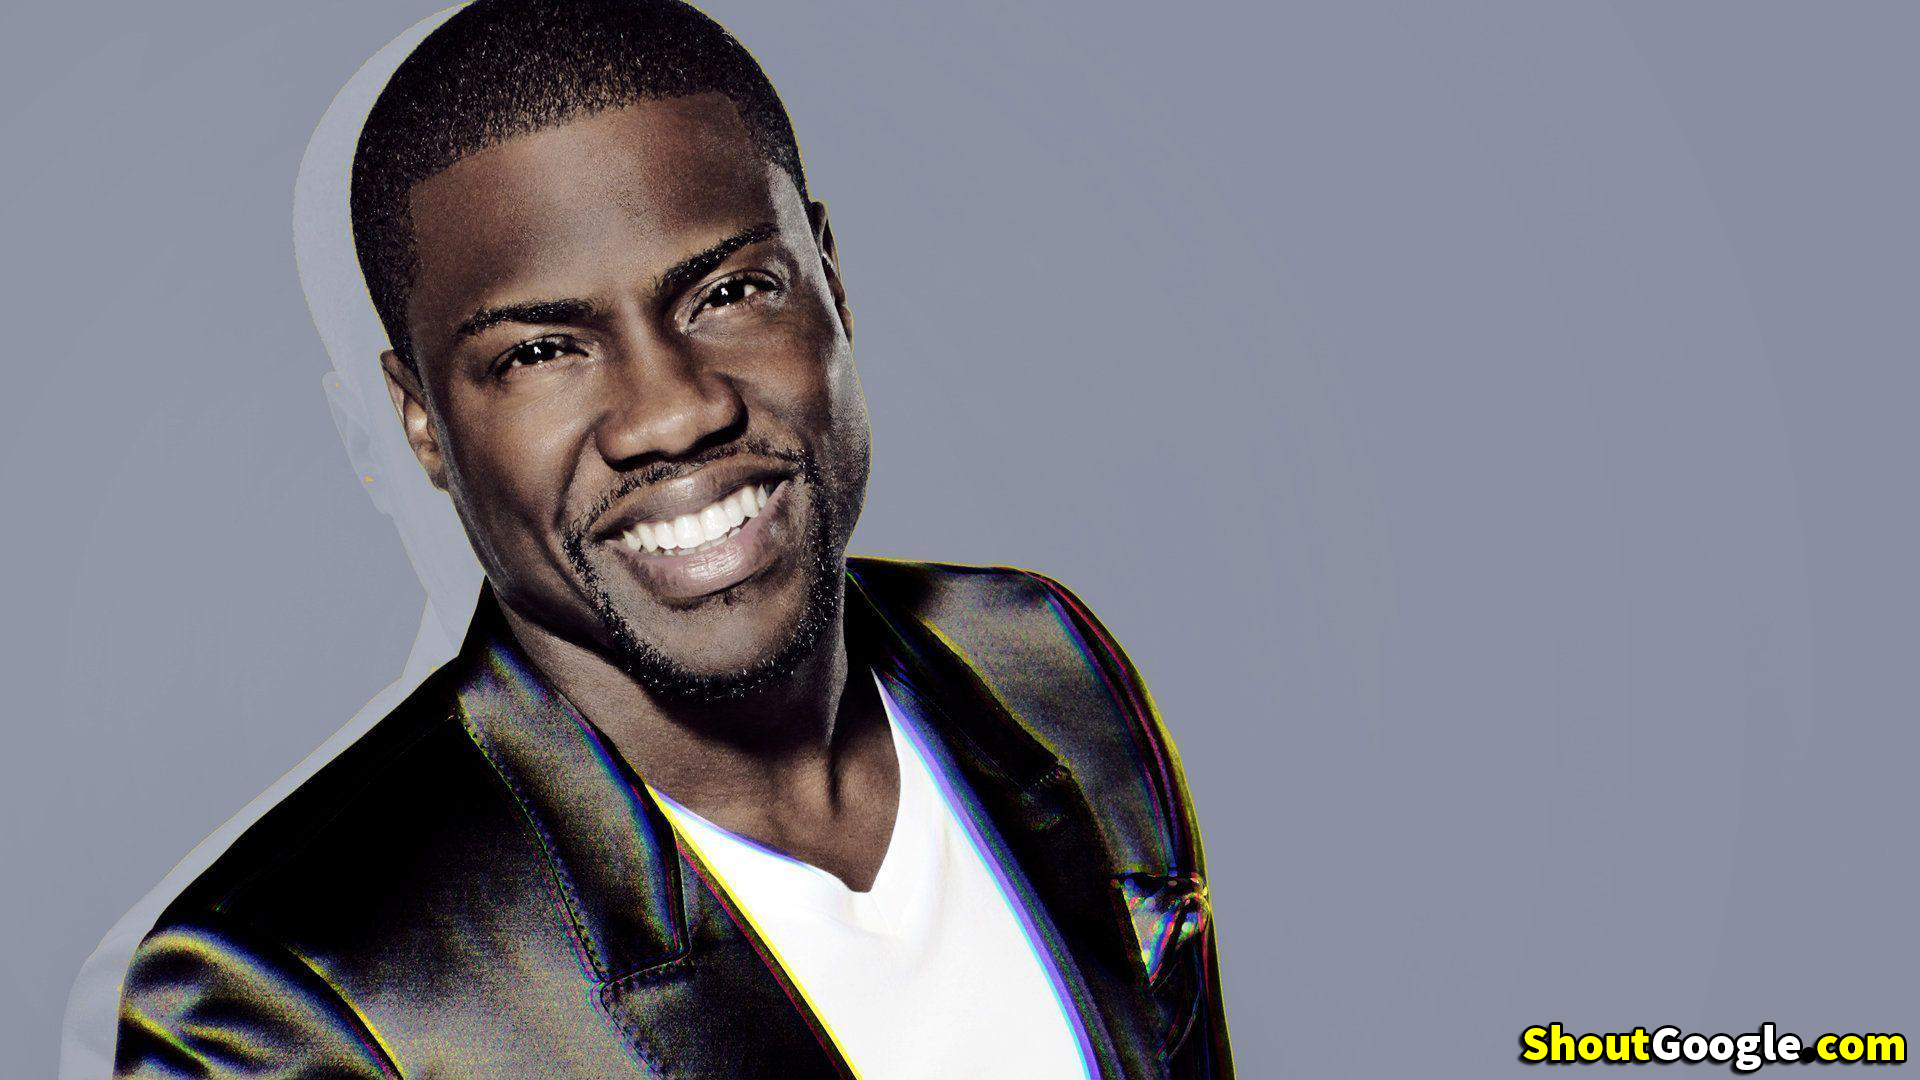 Pin By Joe On Kevin Hart In 2020 Kevin Hart Saturday Night Live Kevin Hart Height